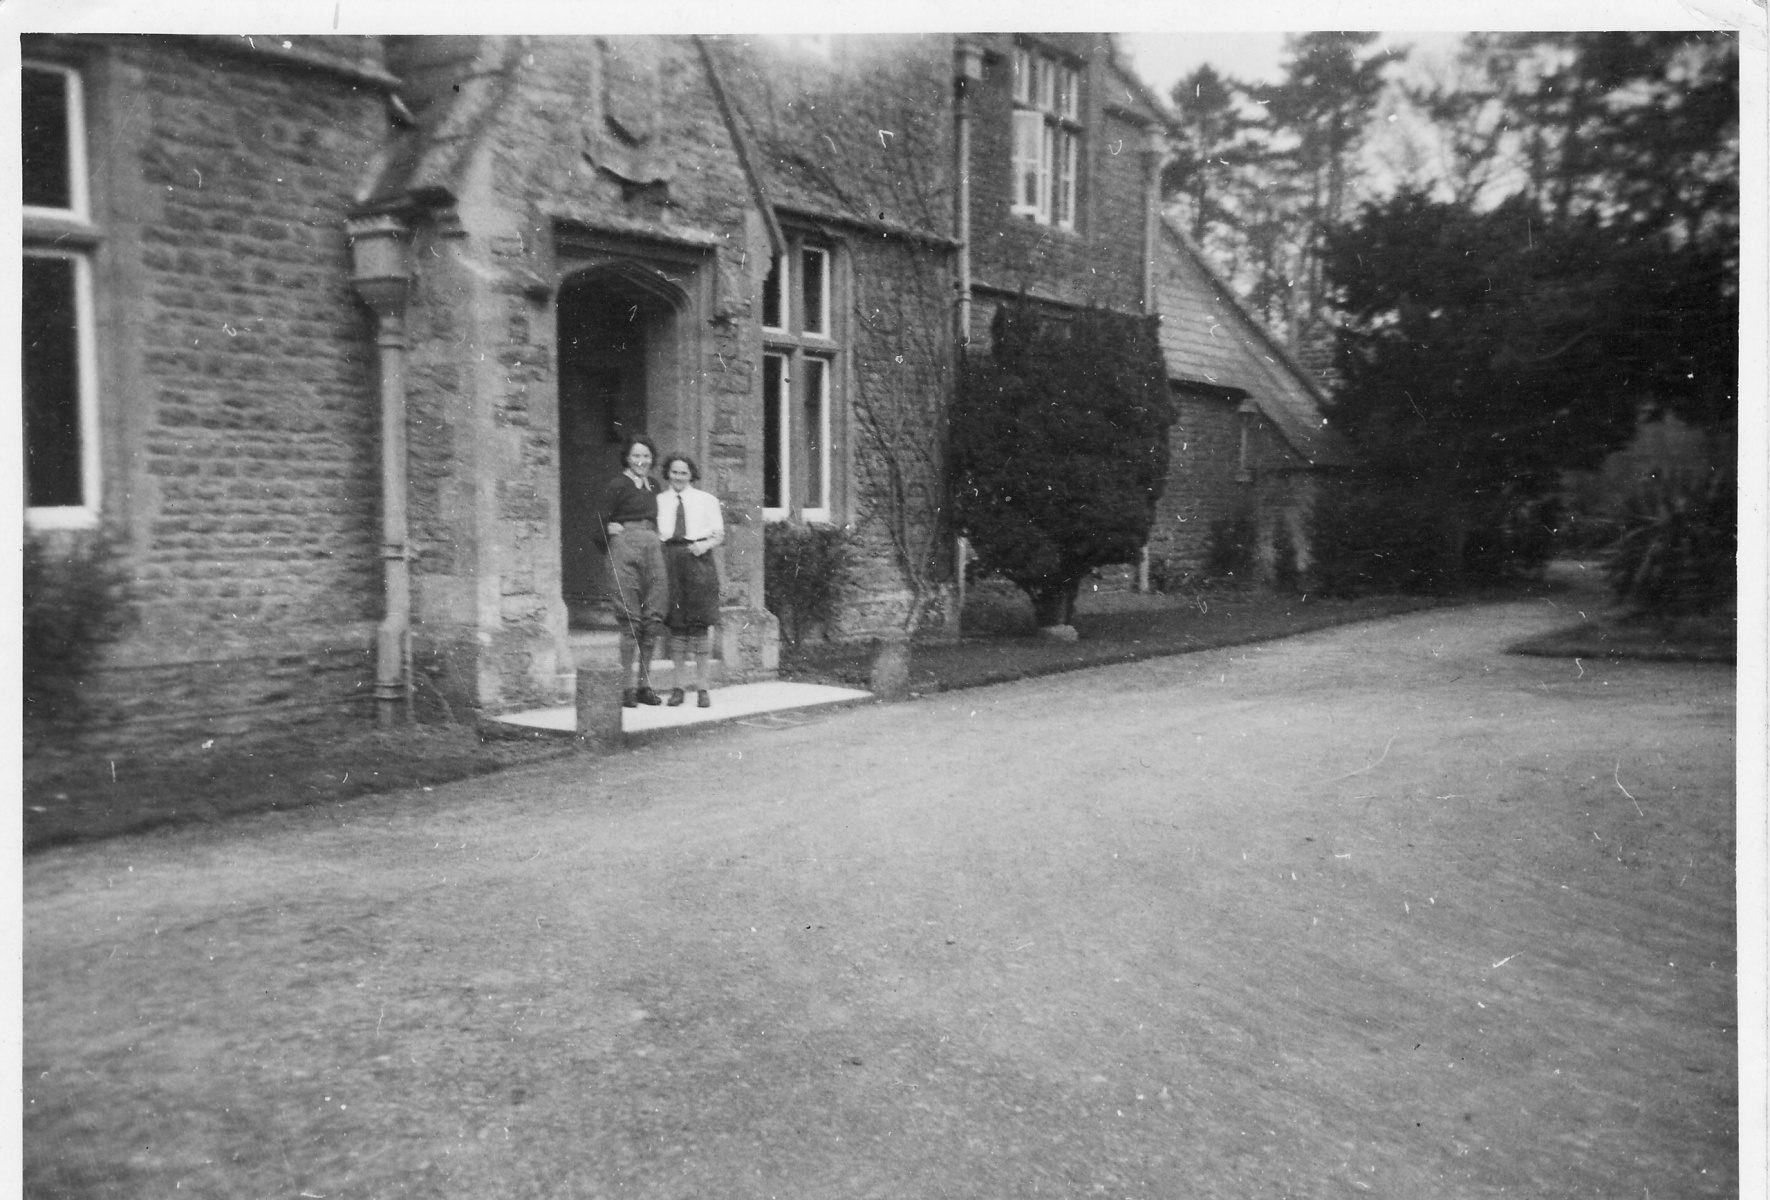 1942. Entrance to Westcote Barton Manor (Hostel). Olive and I.